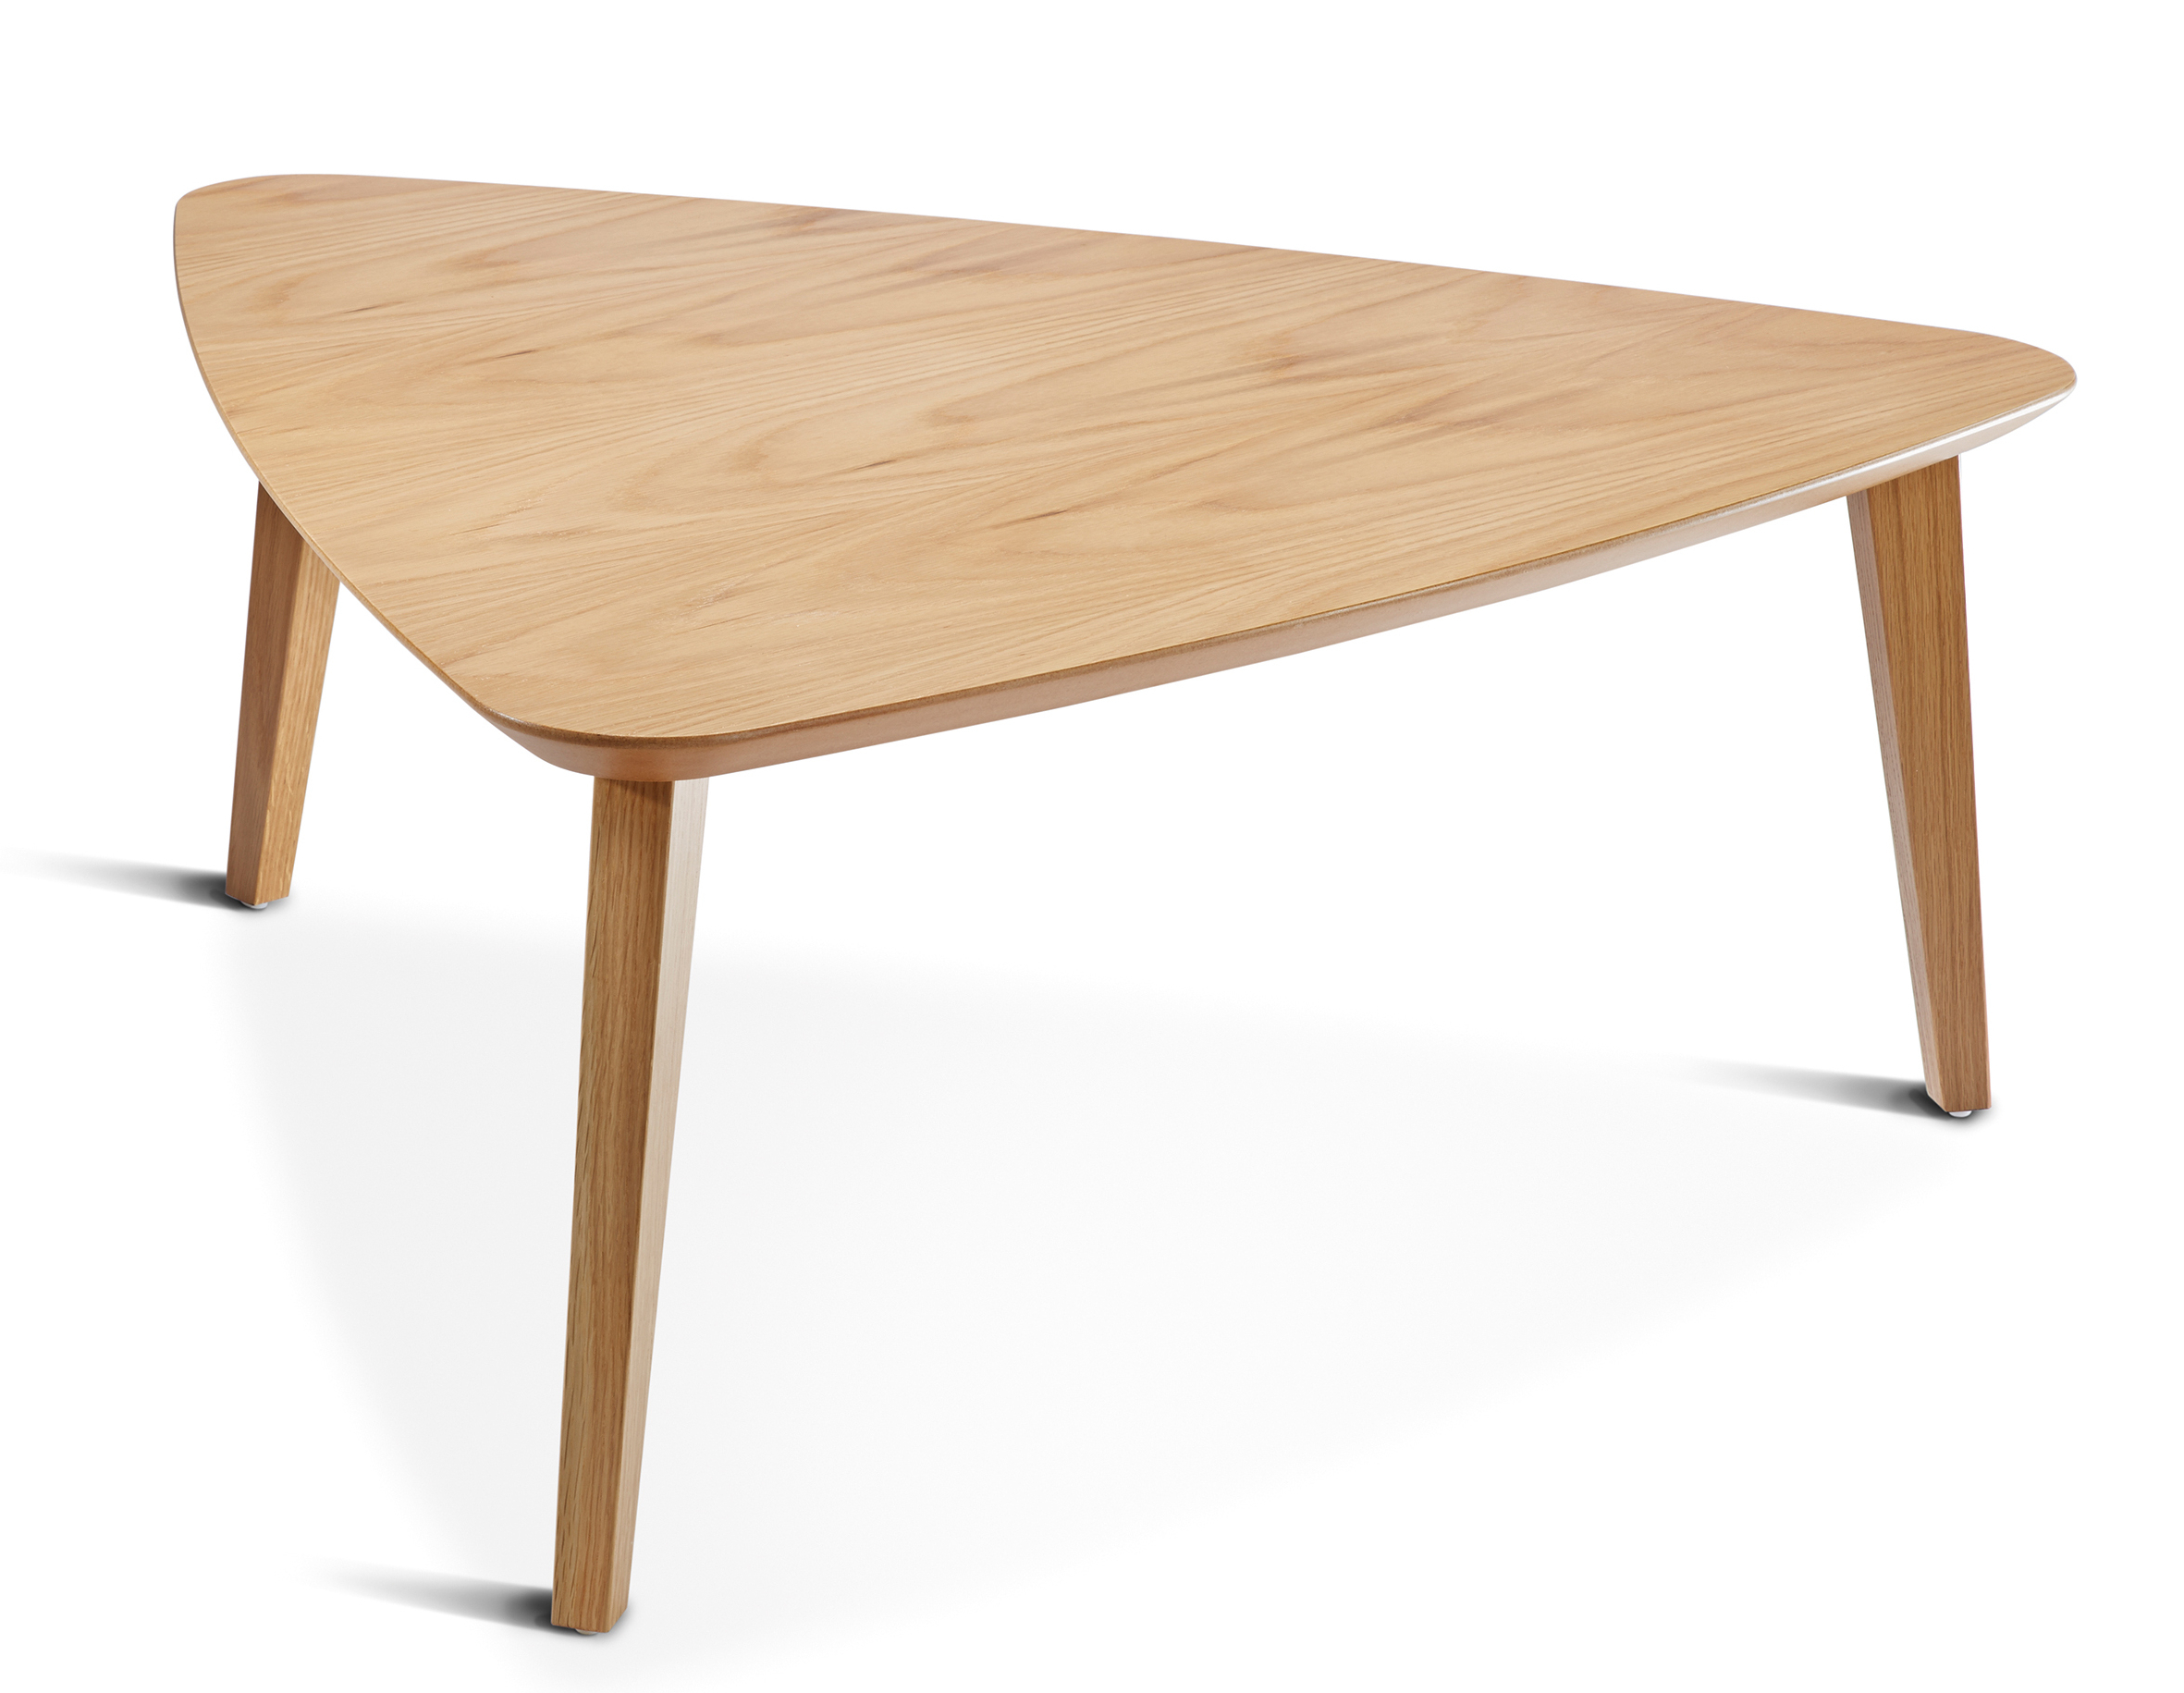 Most Recent Contemporary Curves Coffee Tables Throughout Mortimer Triangular Coffee Table – Tmoc/tri (View 19 of 20)